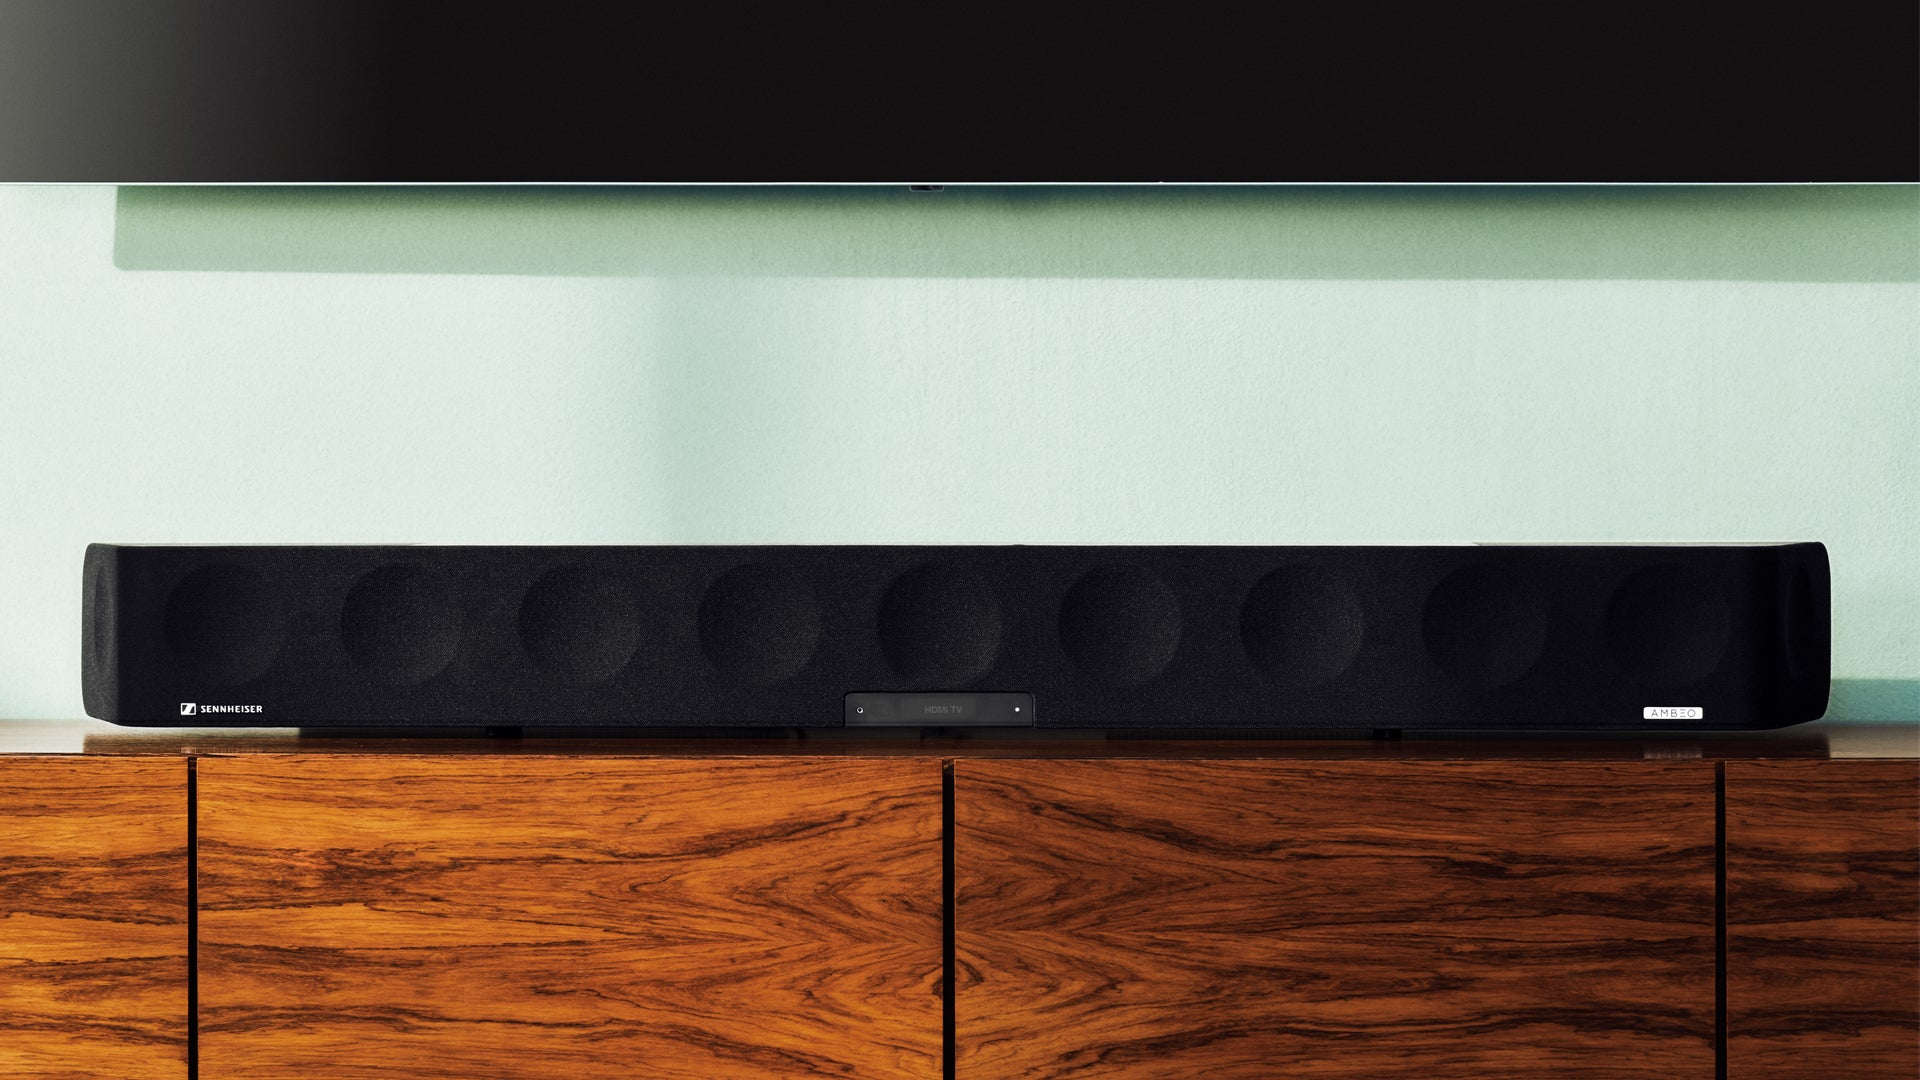 Best Dolby Atmos soundbar: The best Atmos speakers for your TV